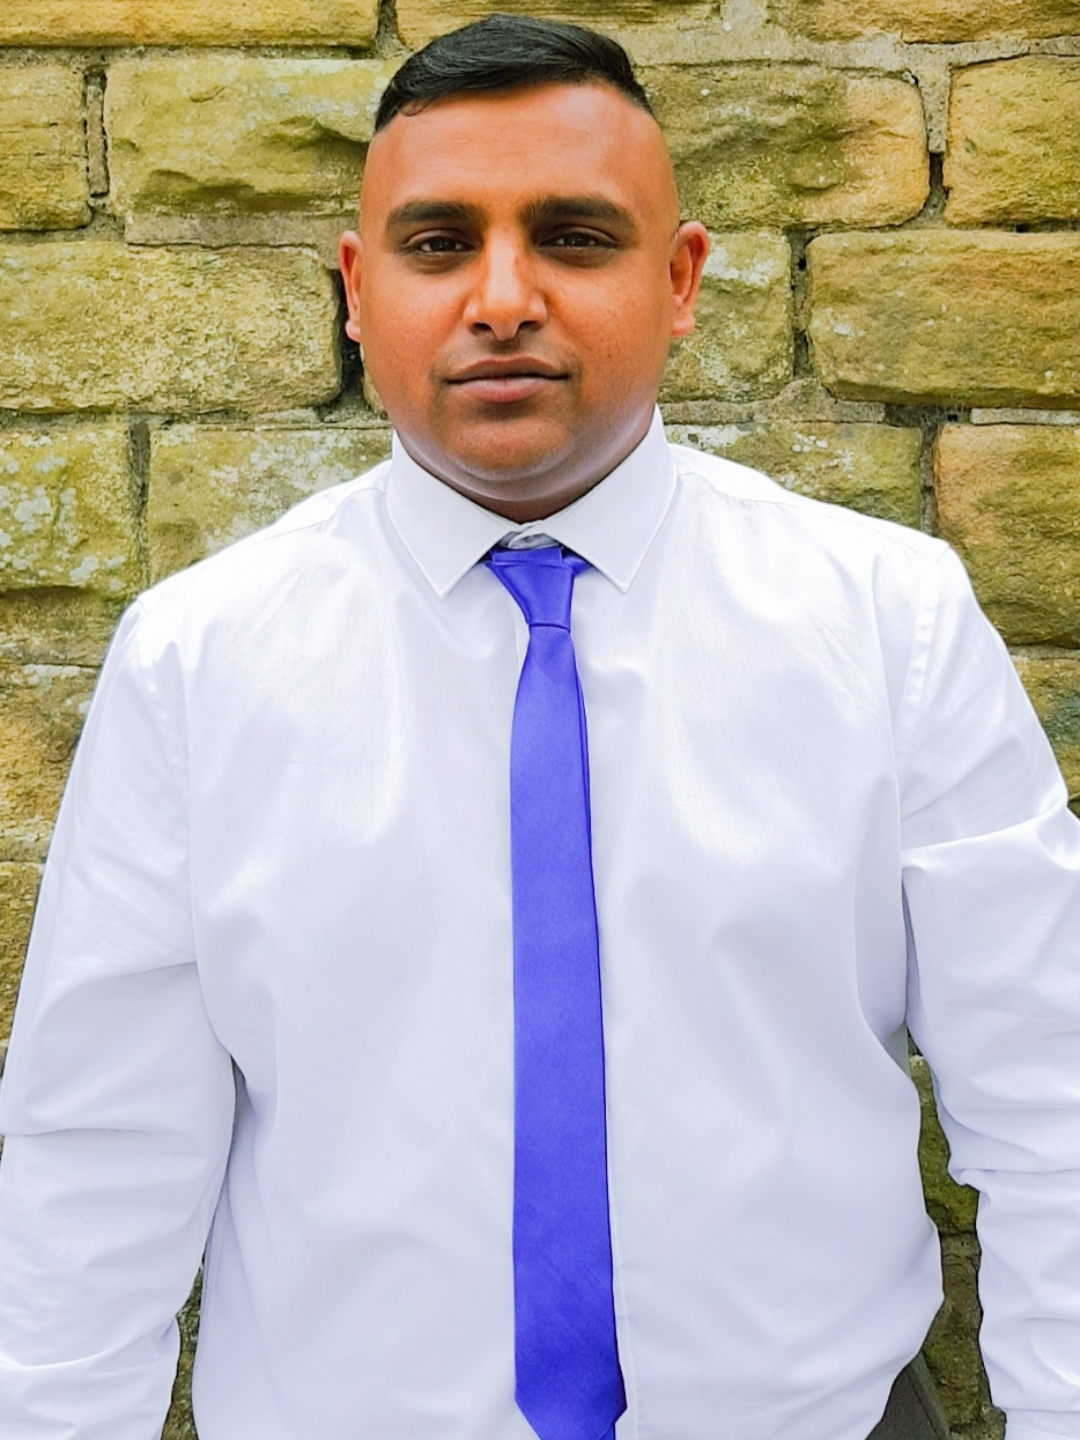 Rashid Hussain, who was shocked to learn a car he had rented from a Keighley and Bradford-based hire firm was linked to a previous theft of petrol